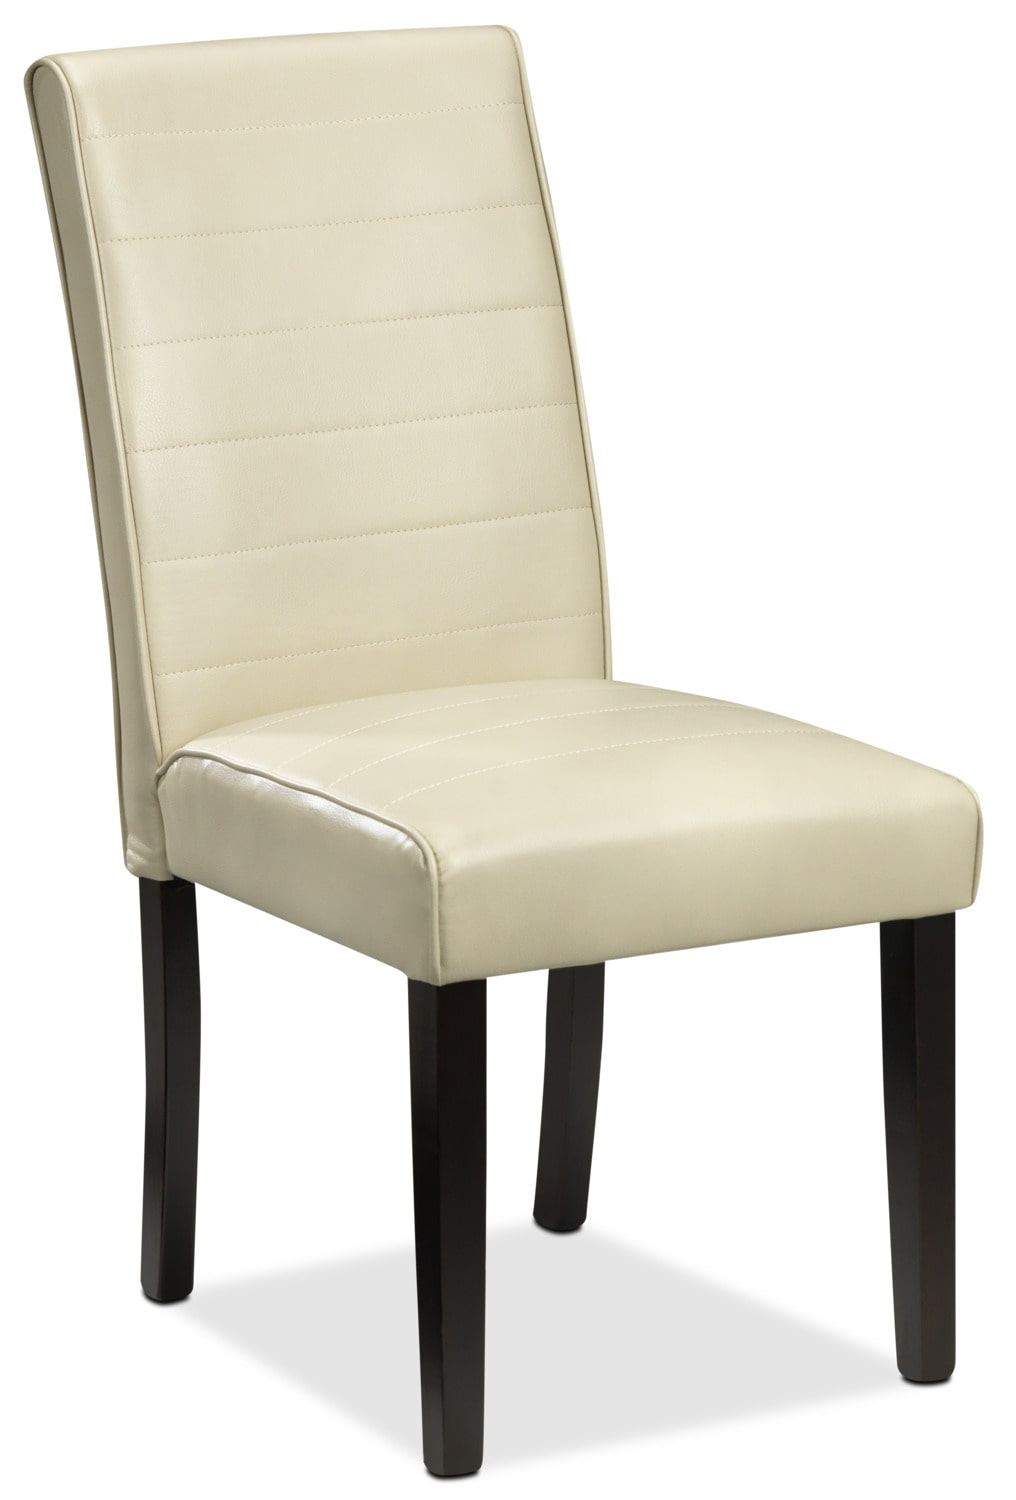 Marlo Bedroom Furniture Marlo Side Chair Beige Leons